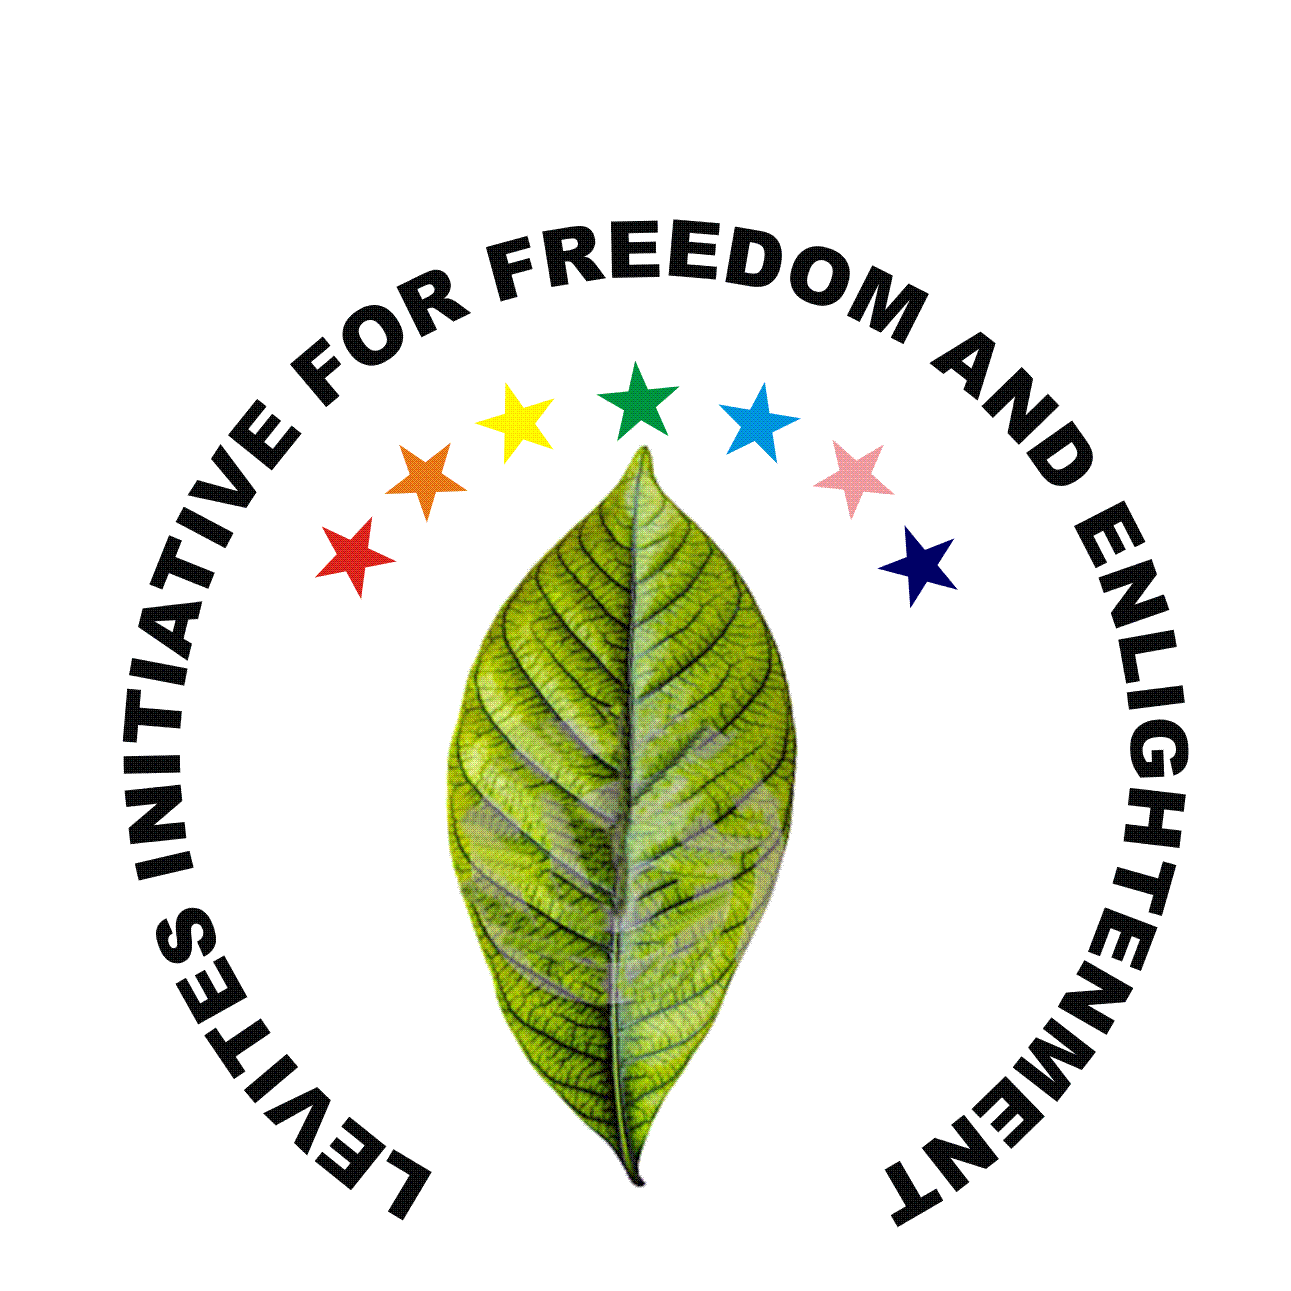 Logo of Levites Initiative for Freedom and Enlightenment